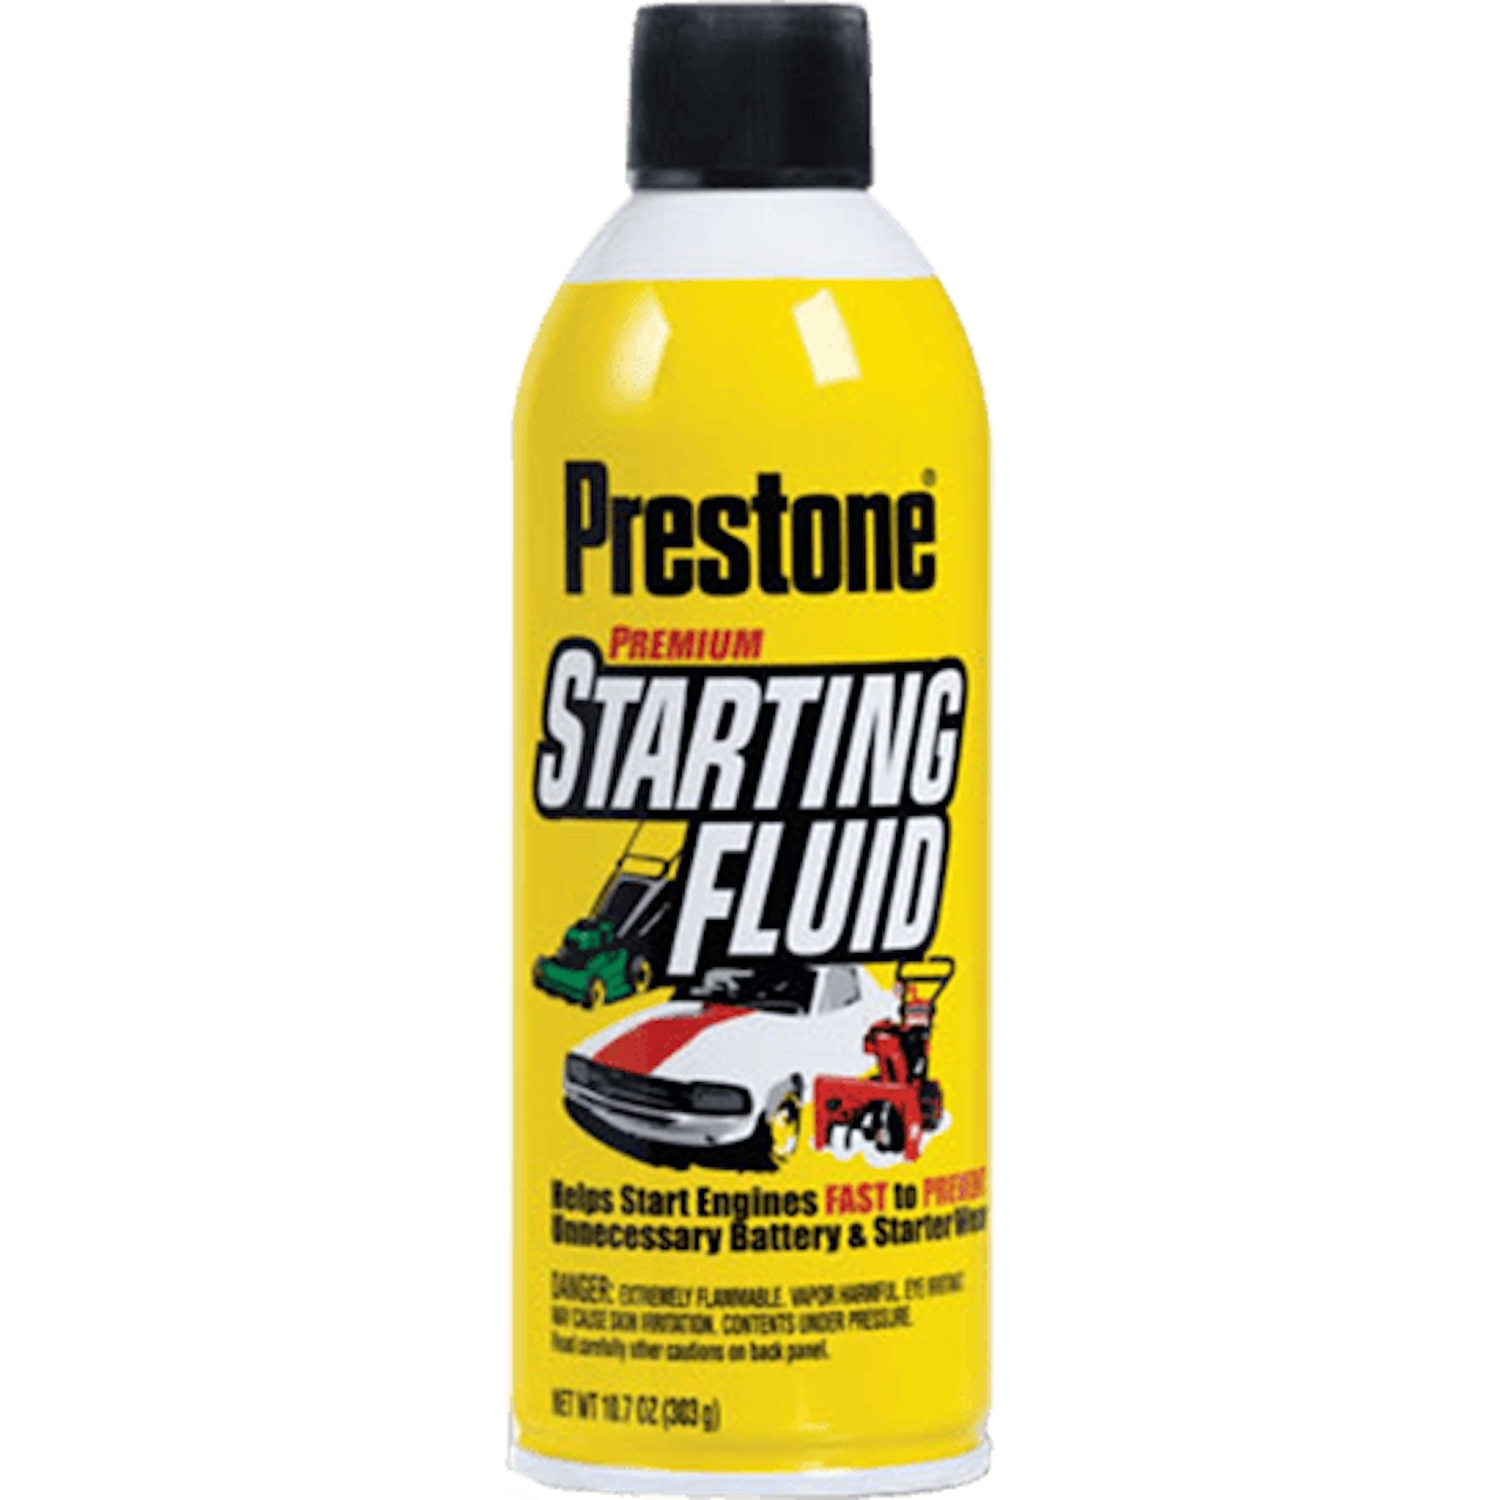 Prestone Starting Fluid